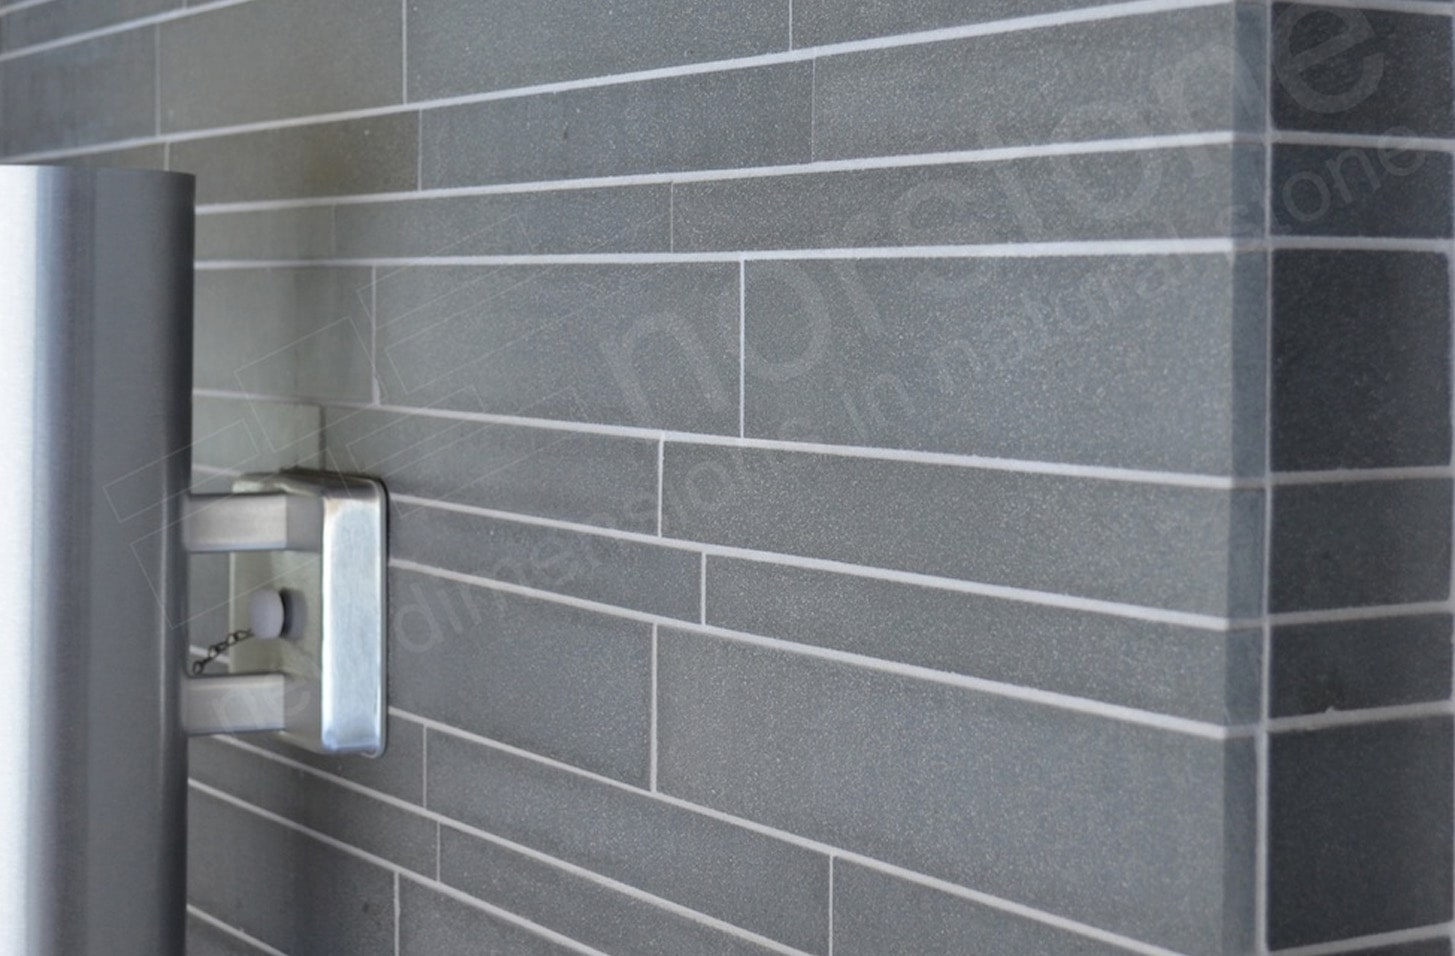 Lava Stone Basalt Interlocking medium format tile used on a wall showing an outside corner and a stainless steel light fixture